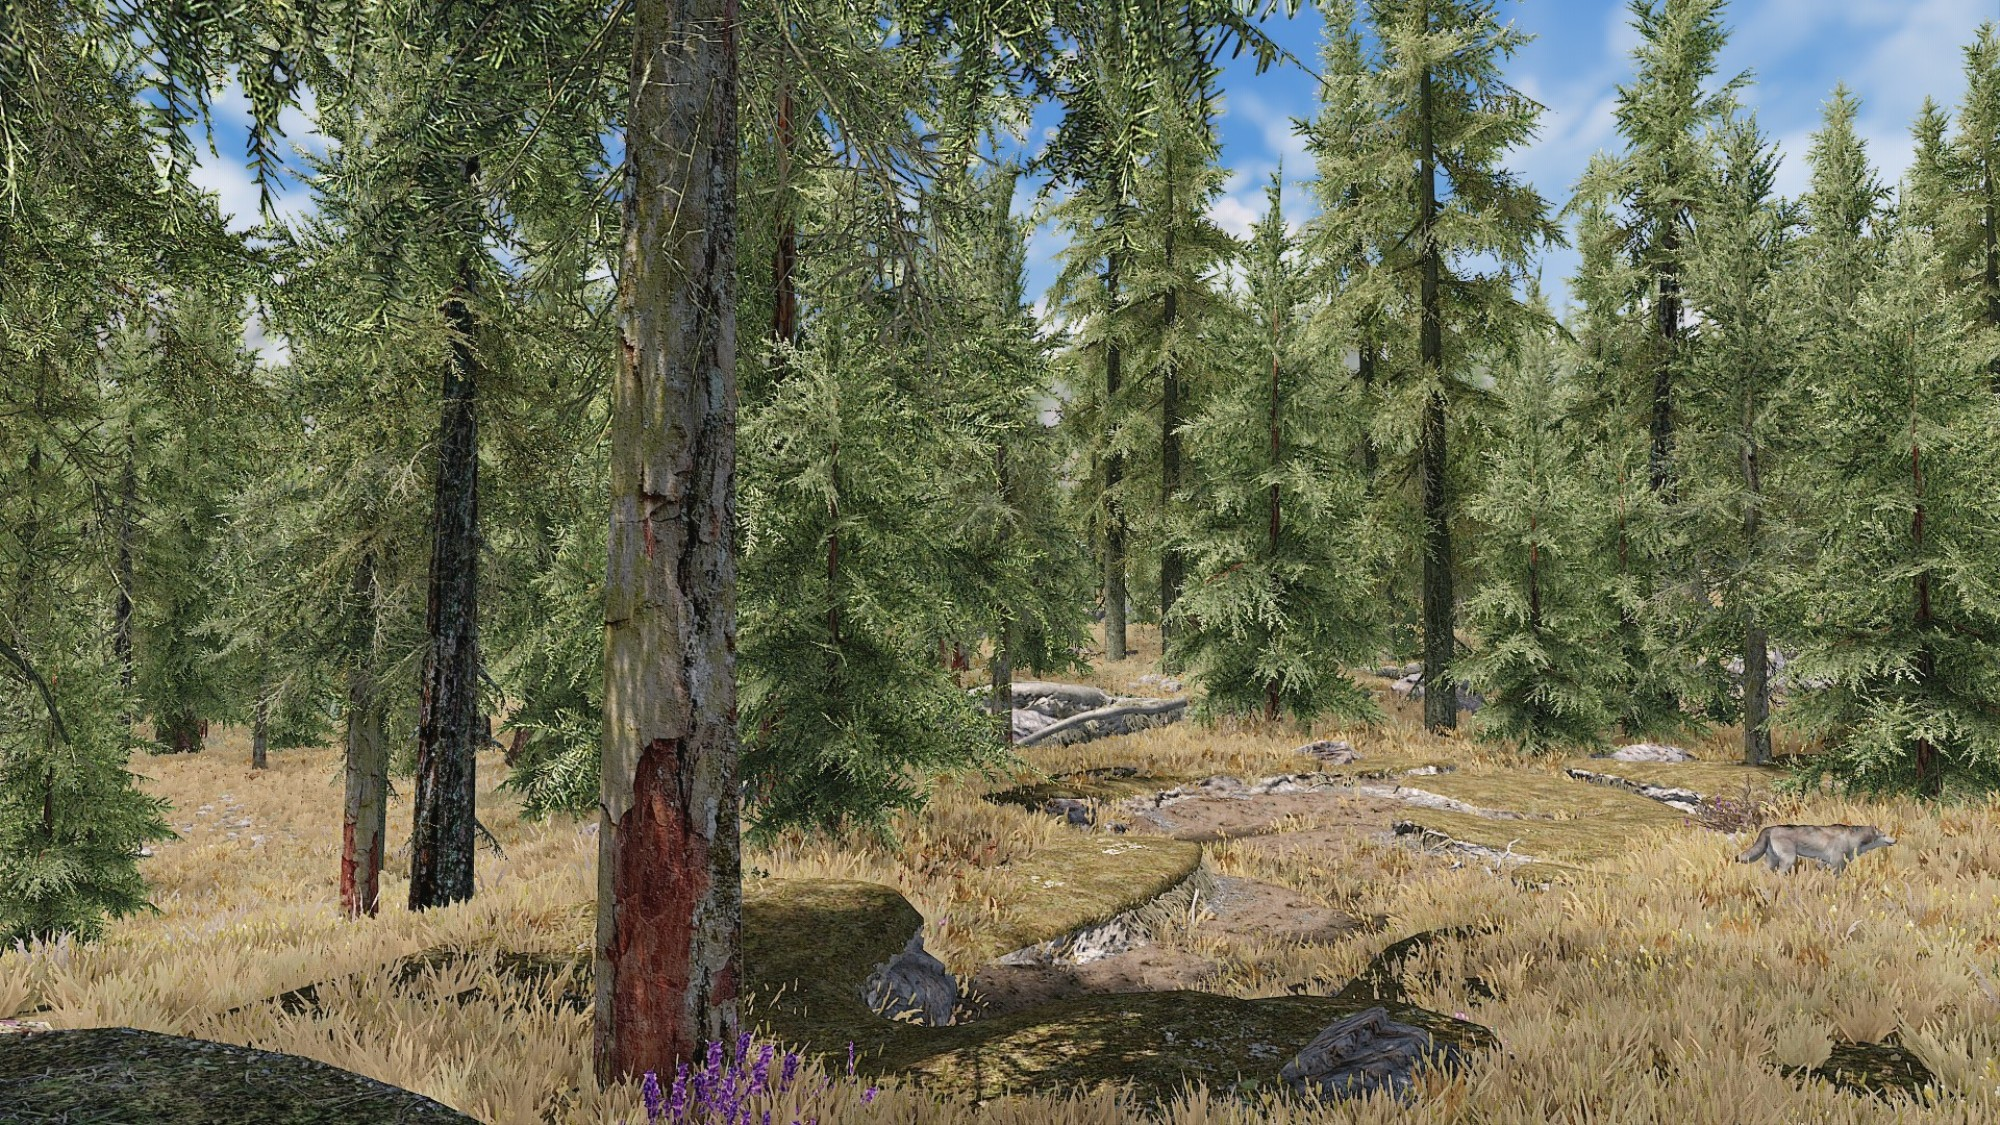 Skyrim' Looks Better With Real Trees - VICE